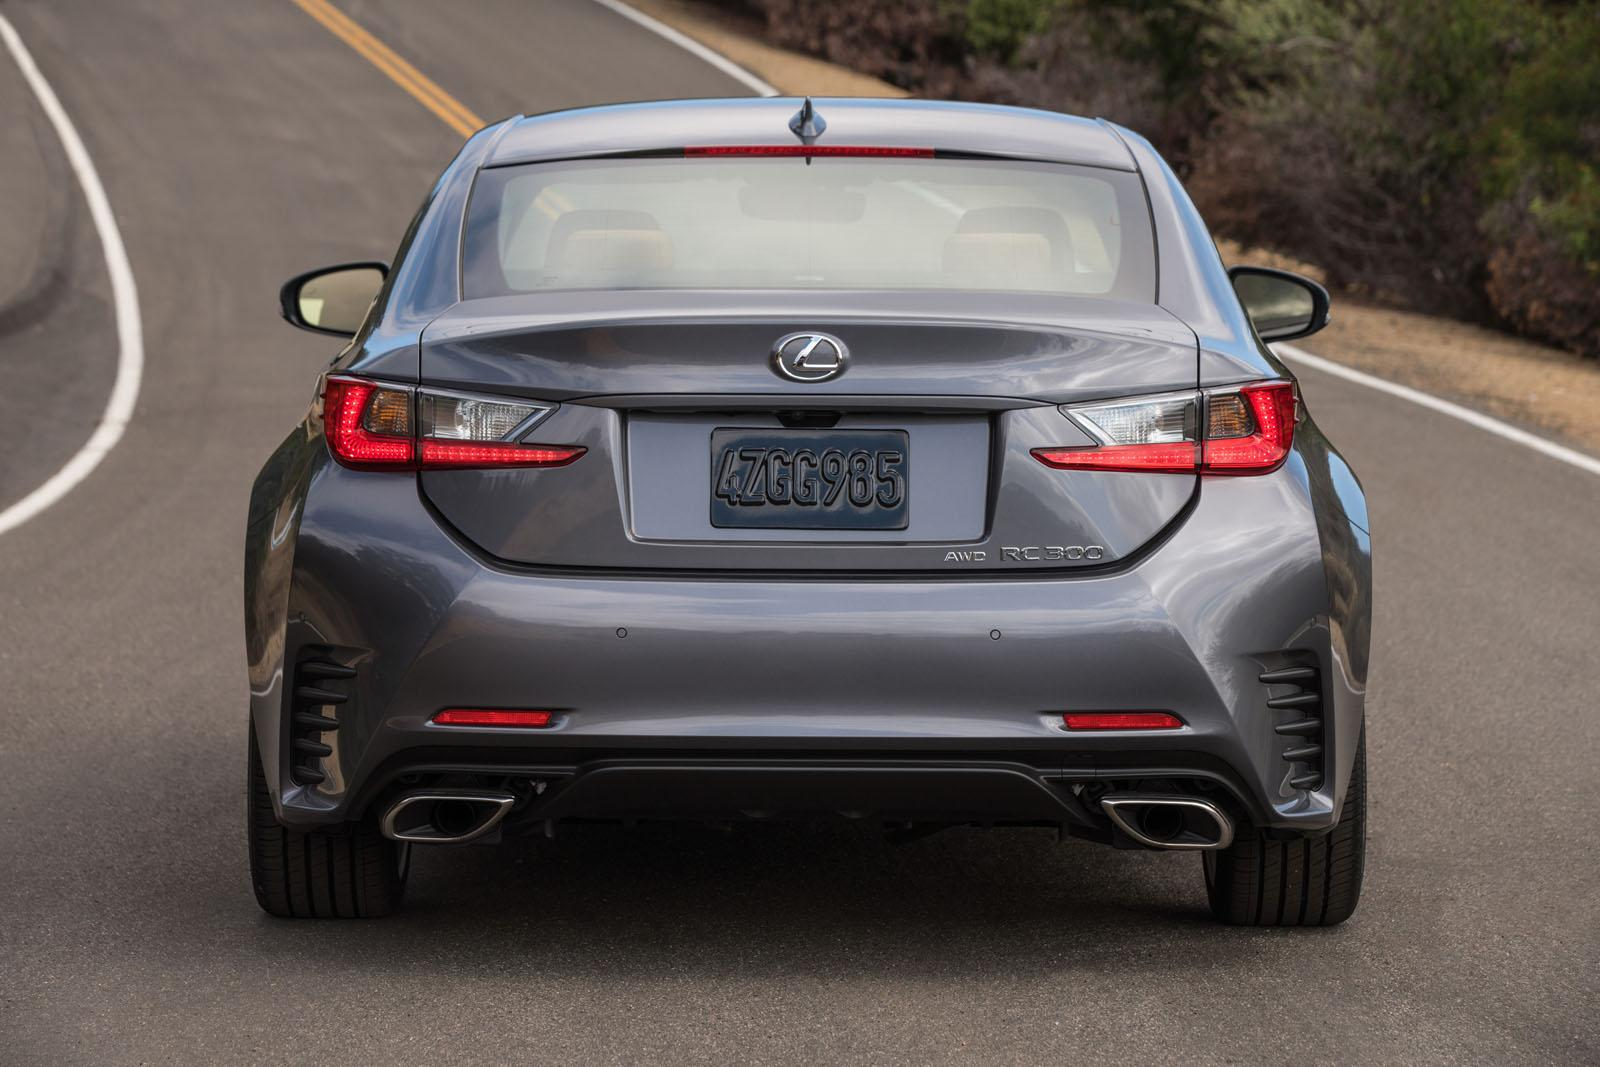 2016 Lexus RC Coupe Revealed, Gets 200t Model with 241 HP ...